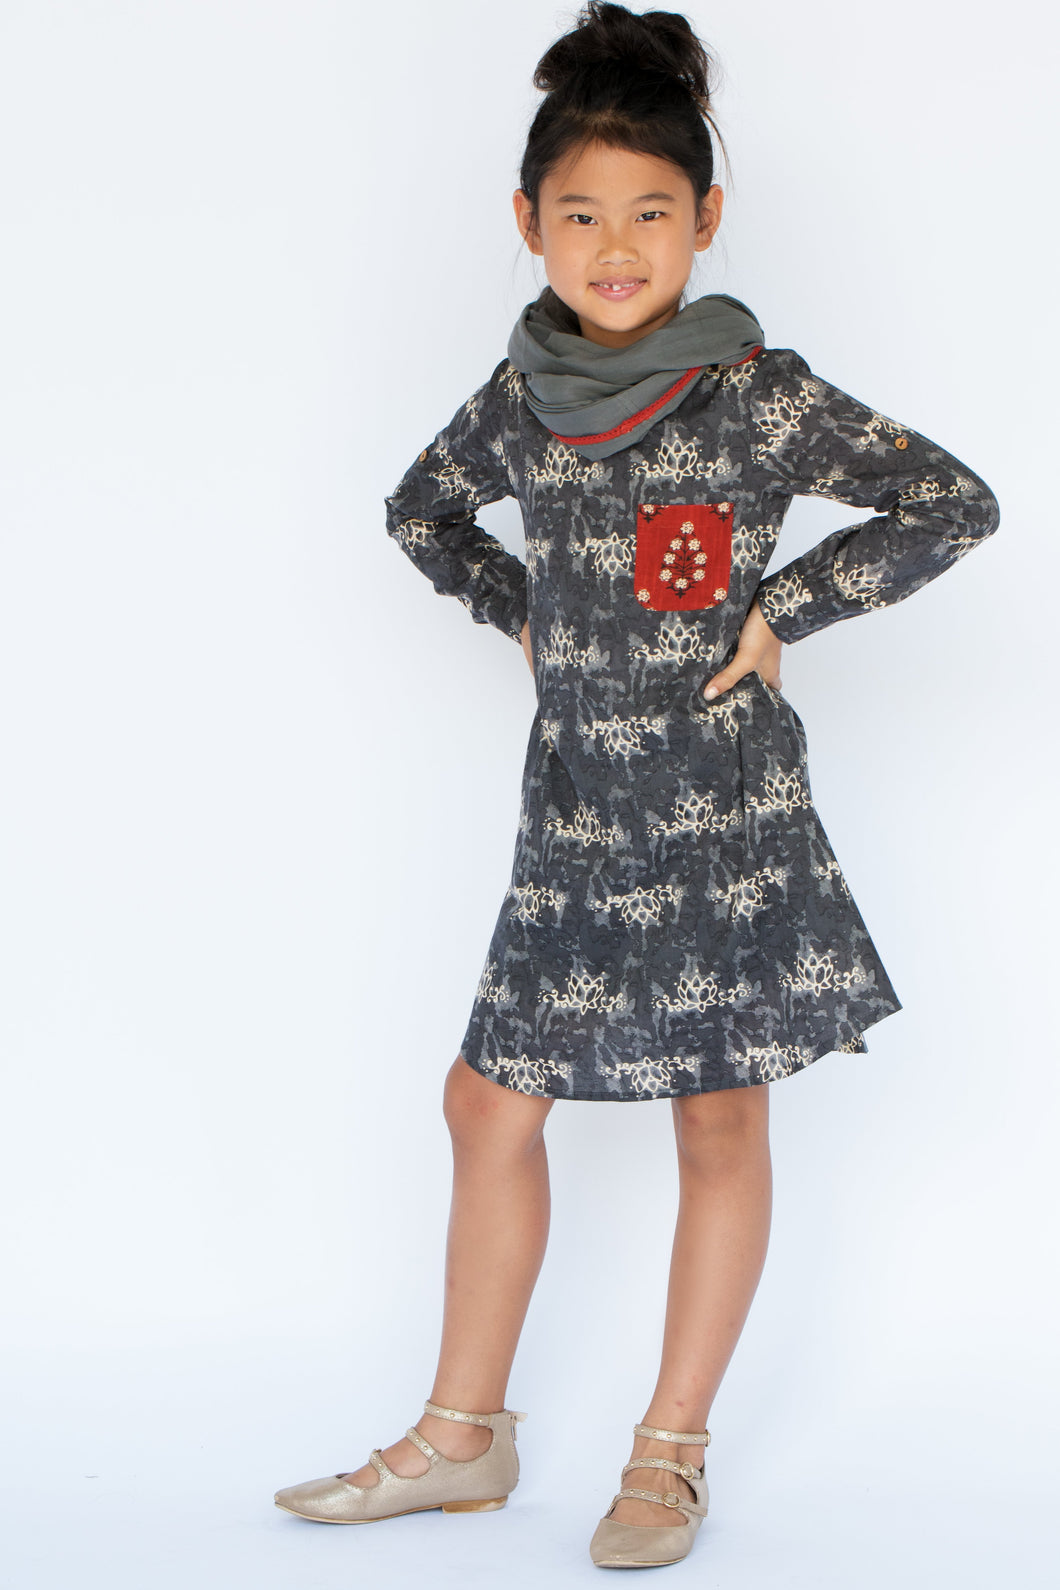 Grey Lotus Print Dress & Scarf Set - Kids Clothing, 2-pc. set - Girls Dress, Yo Baby Online - Yo Baby